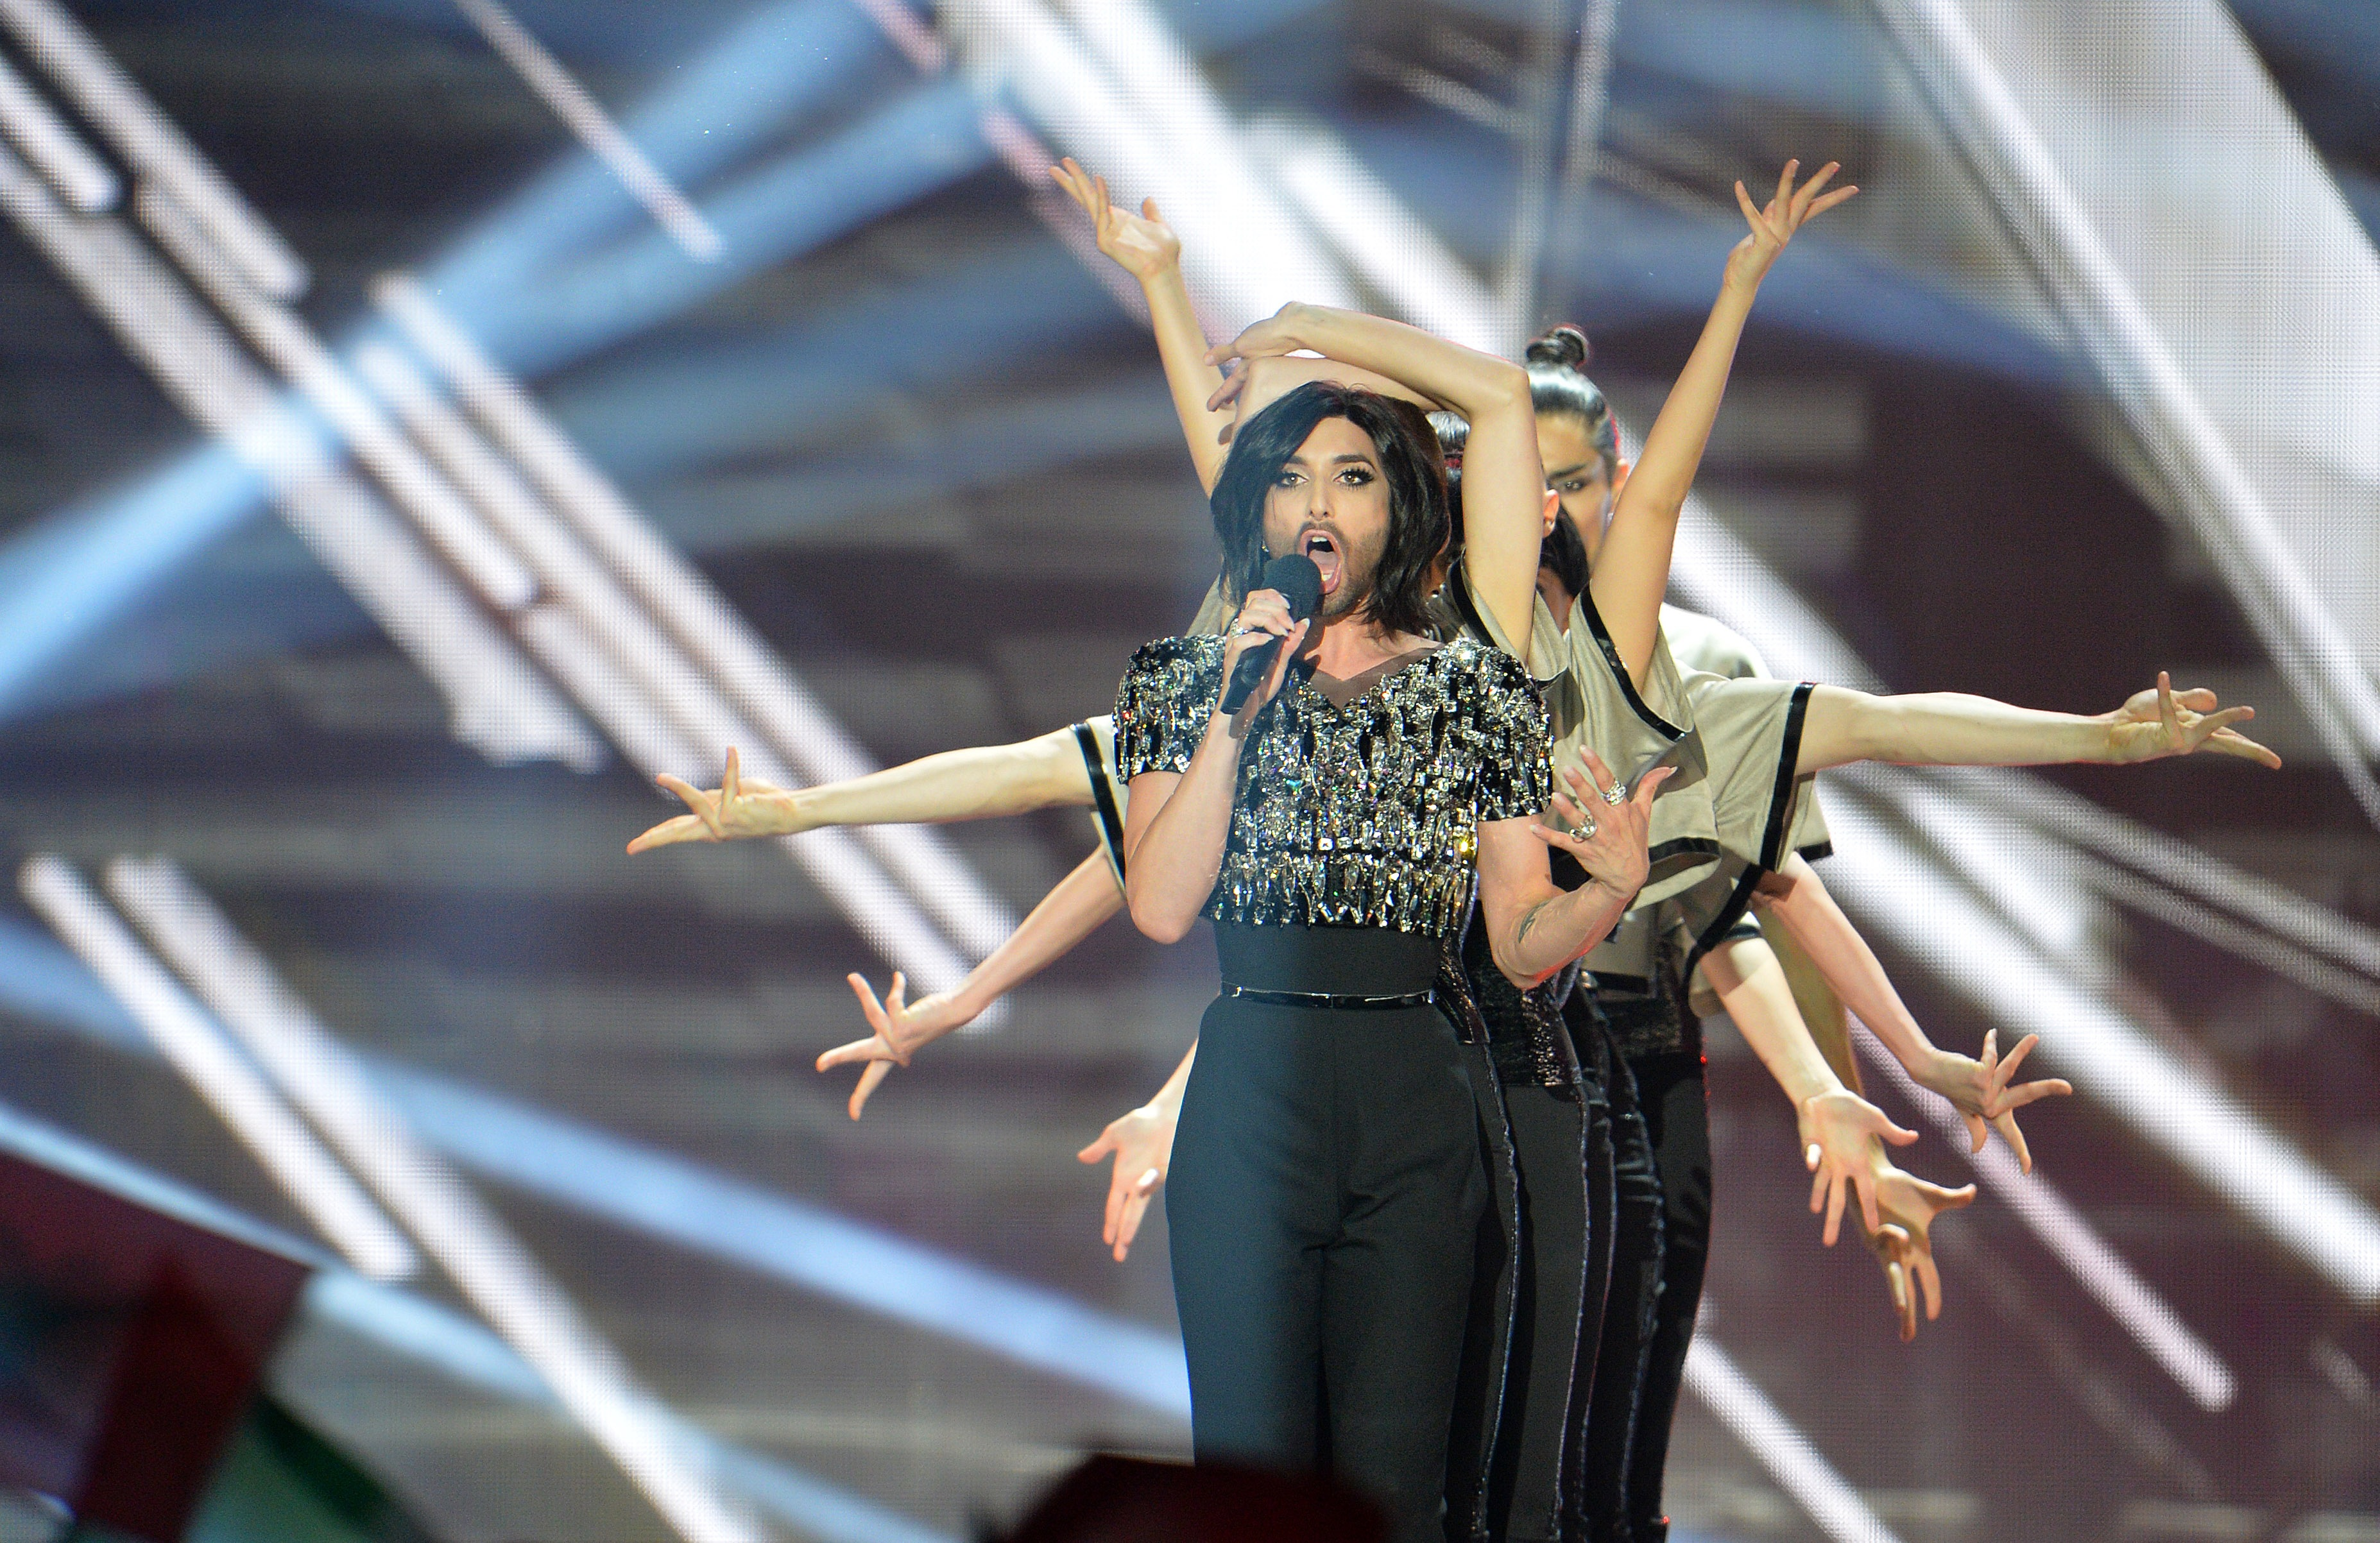 Conchita Wurst, who won the 2014 ESC for Austria, performs during a break in the final of the Eurovision Song Contest in Aust